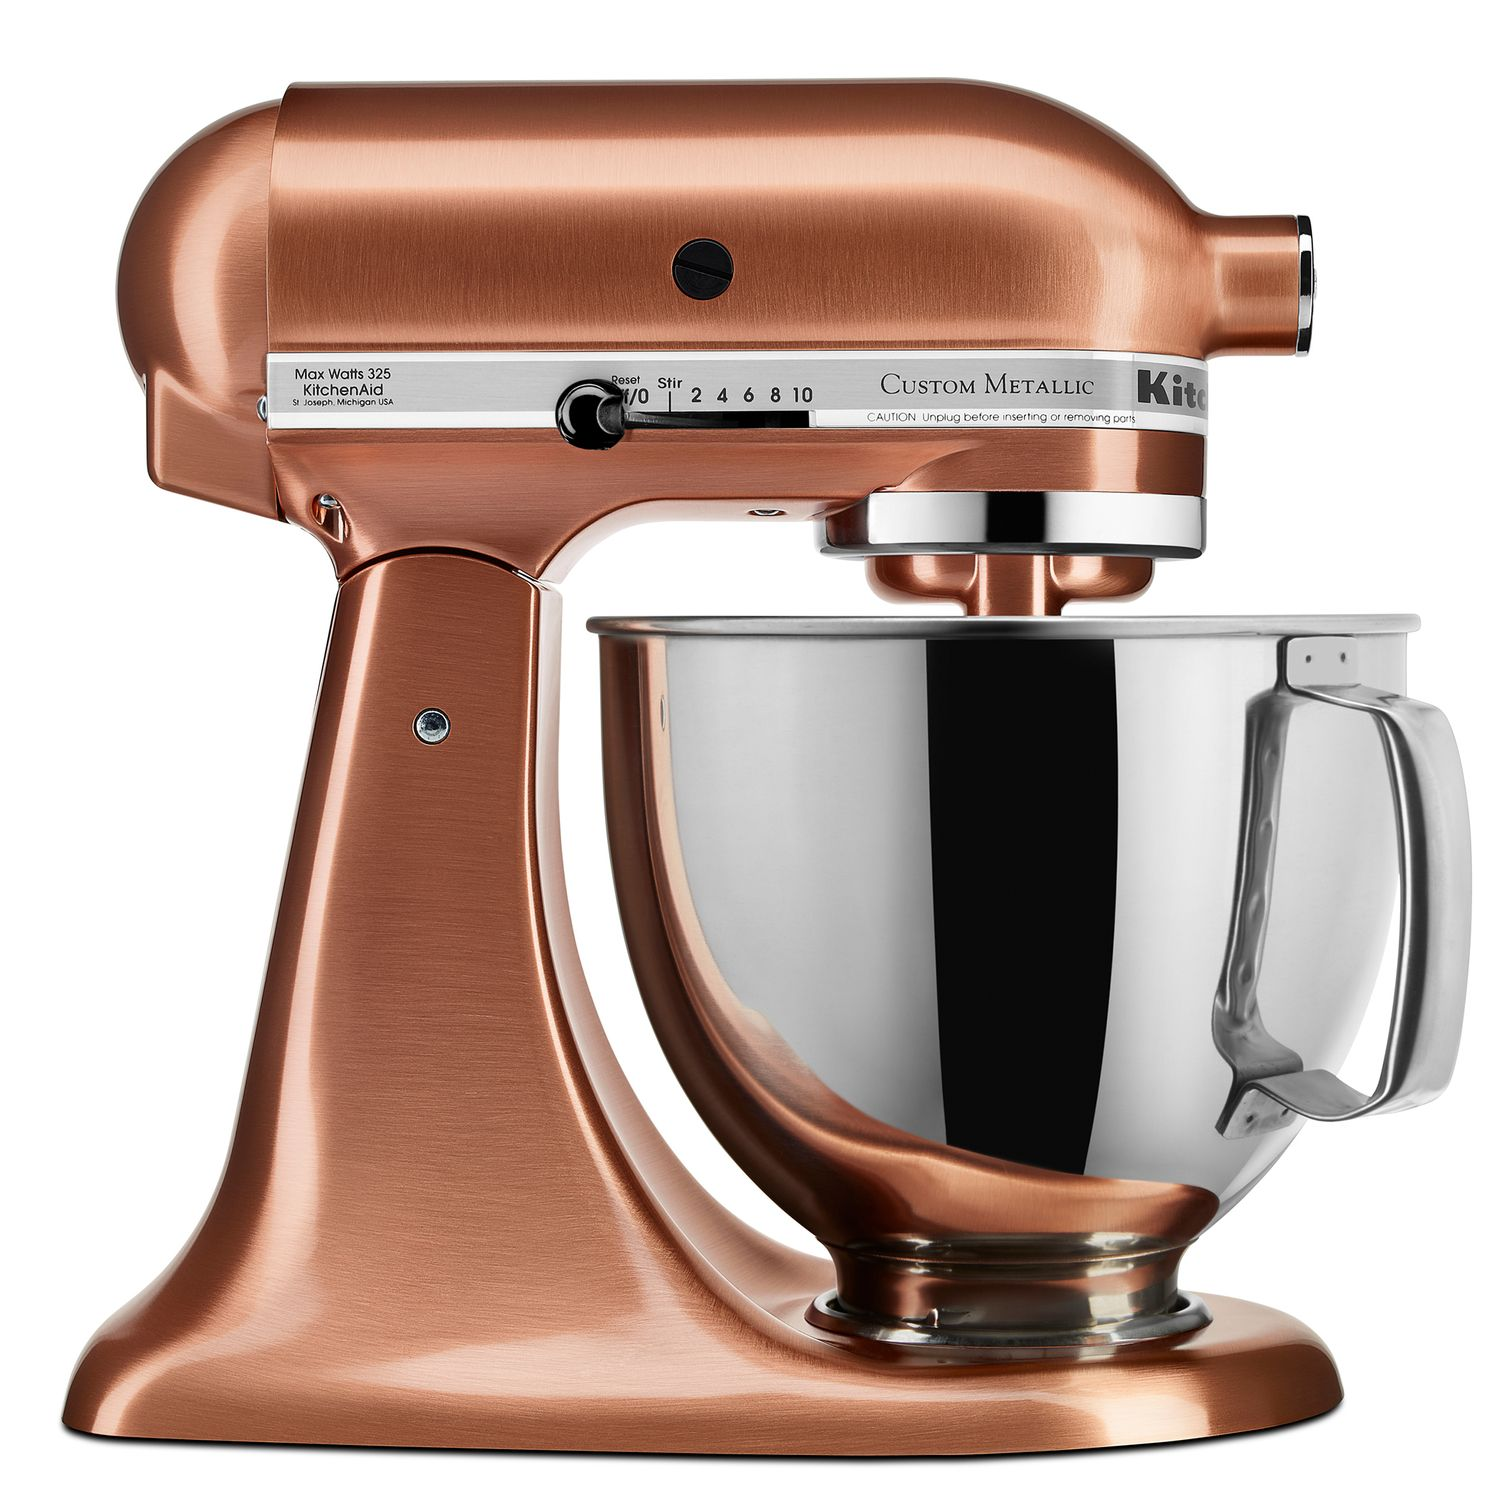 KitchenAid KSM152PS Custom Metallic 5 Qt. Stand Mixer